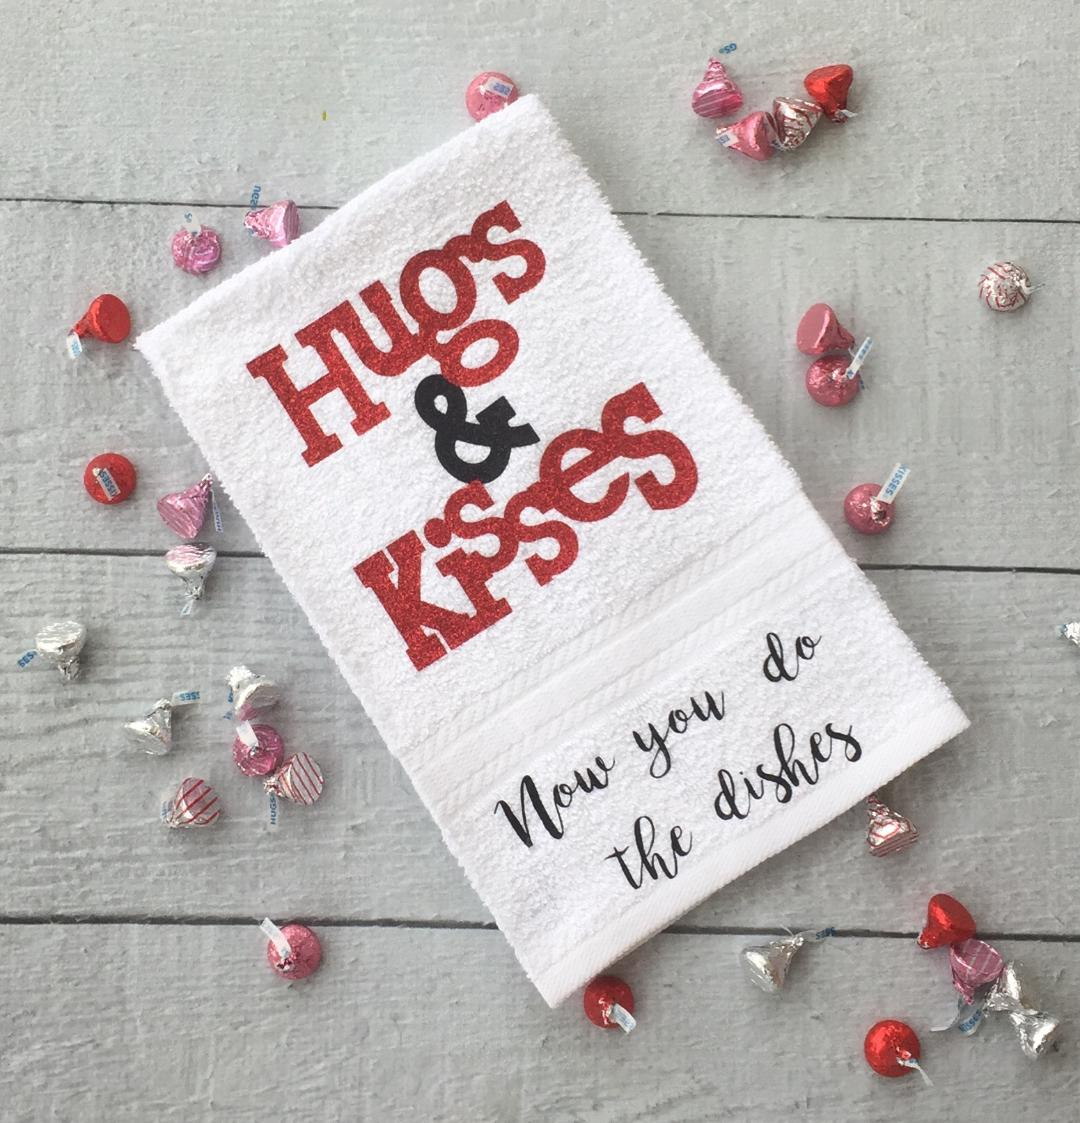 Valentine's Day towel idea Hugs & Kisses Towel